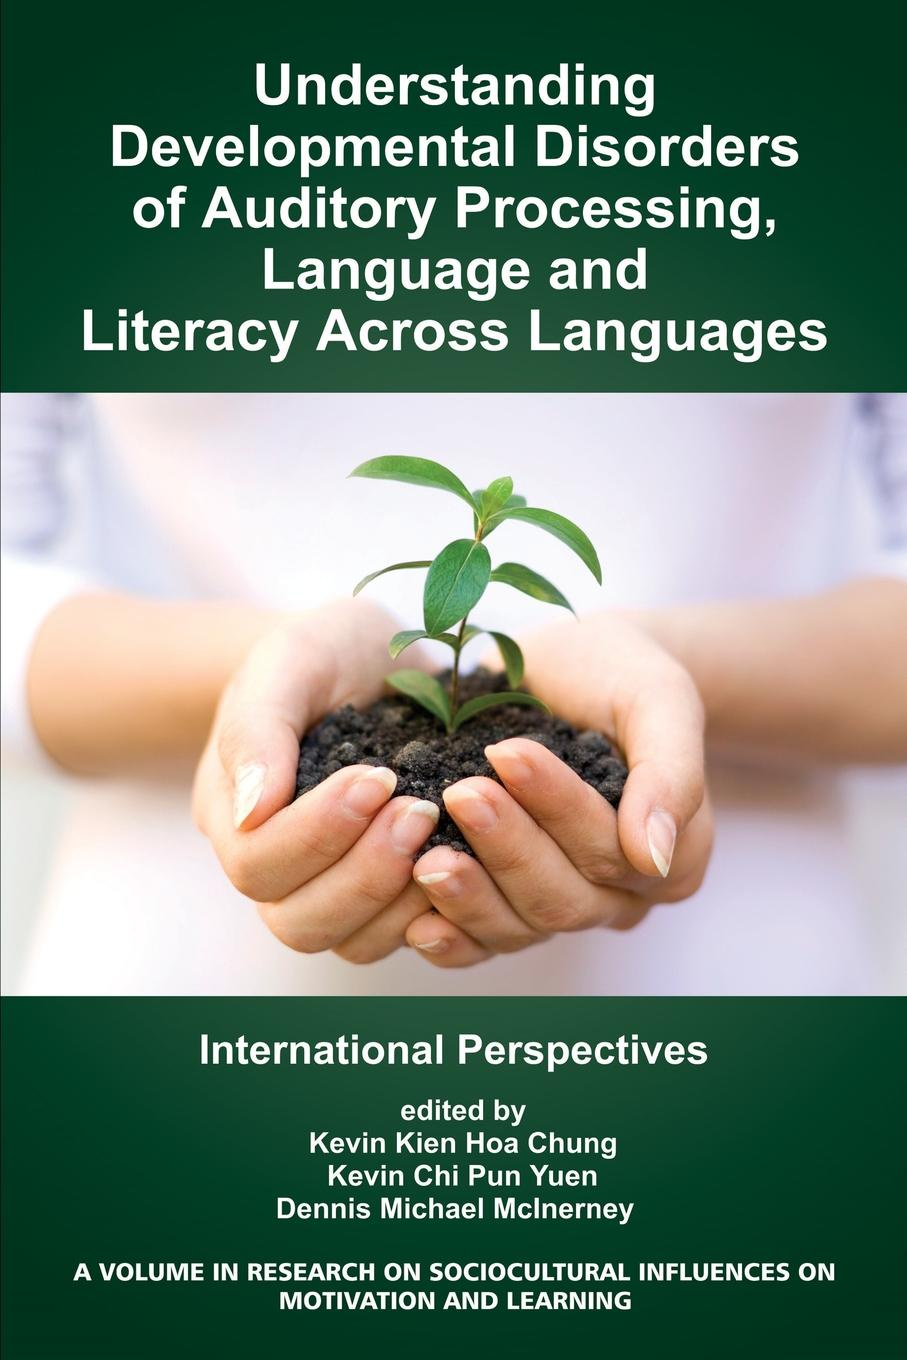 Understanding Developmental Disorders of Auditory Processing, Language and Literacy Across Languages. International Perspectives hulme charles developmental disorders of language learning and cognition